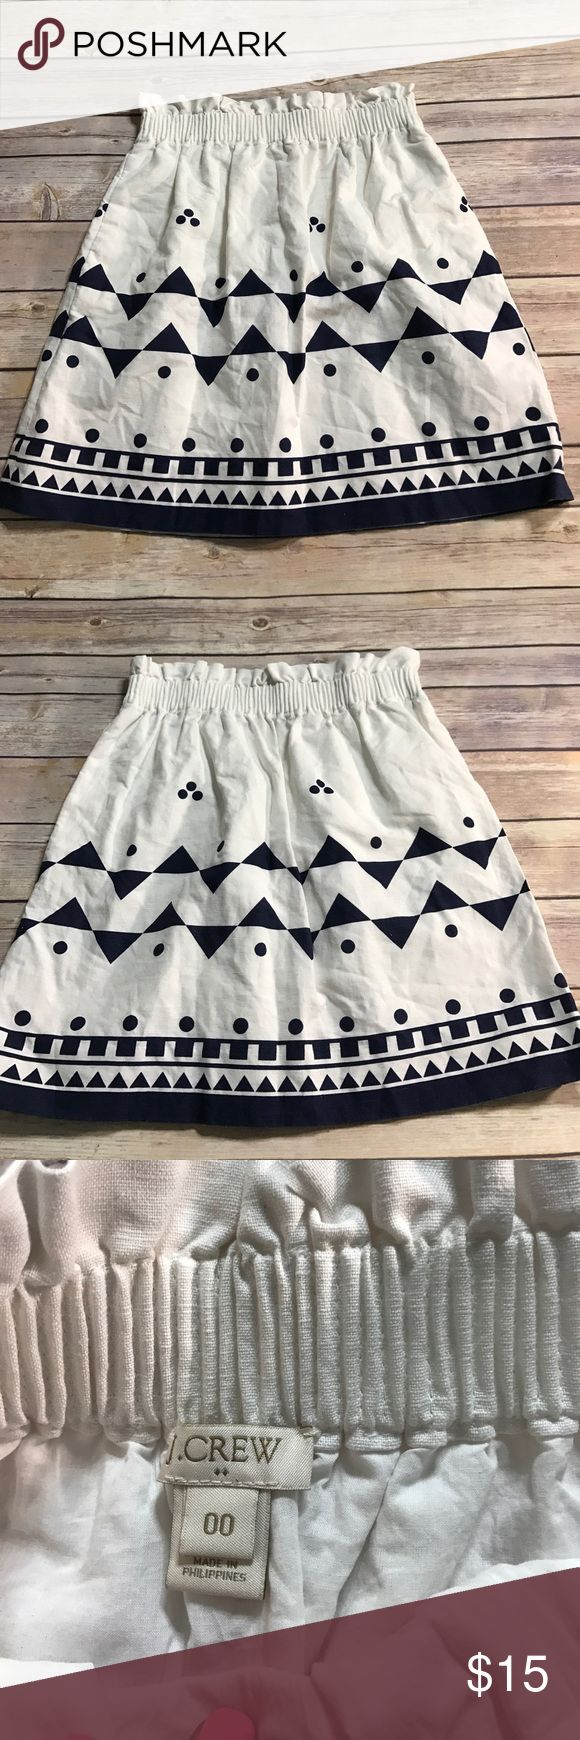 J Crew Skirt ✨ J Crew blue and white skirt💕 Size 00 💕 Stretch around Waist  ⁉️Need more information or measurements? Please don't hesitate to ask  ❌Sorry, I am unable model items!  ✅ Fast Shipper: Shipping Same Day/Next Day  🚫I do not trade items/ No returns  💕I do accept REASONABLE offers ☺ J. Crew Skirts